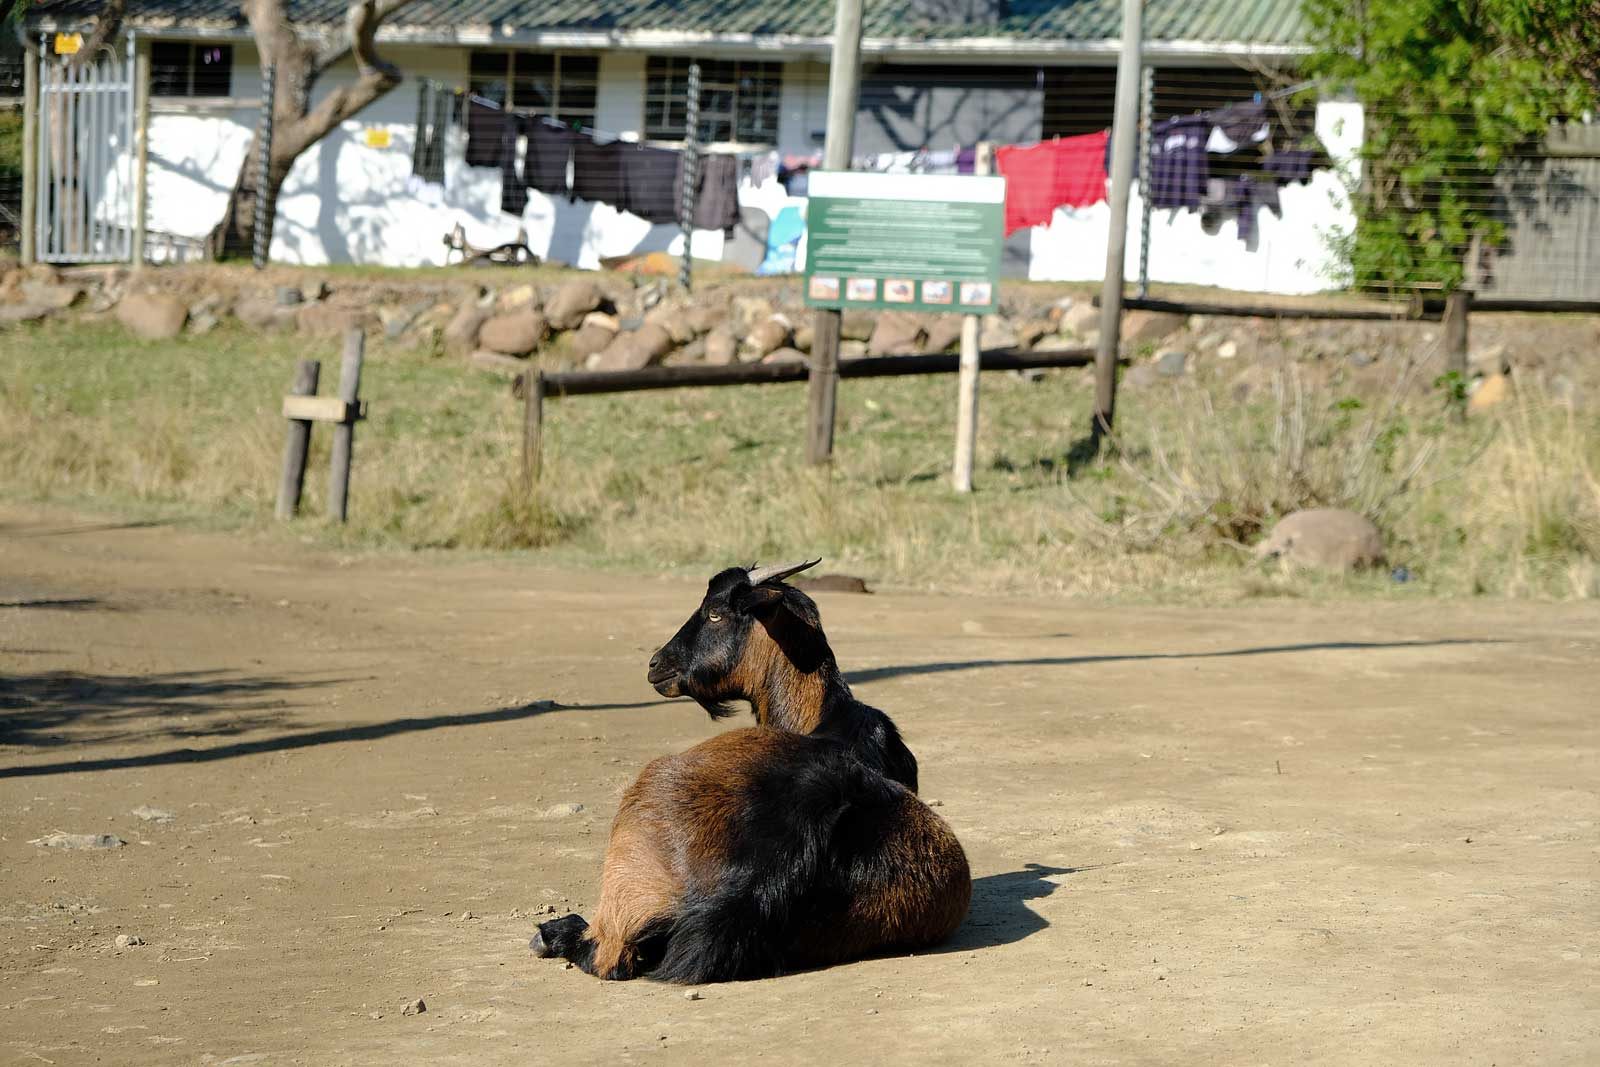 A goat rests on the road of Mbotyi, Wild Coast Kwazulu Natal